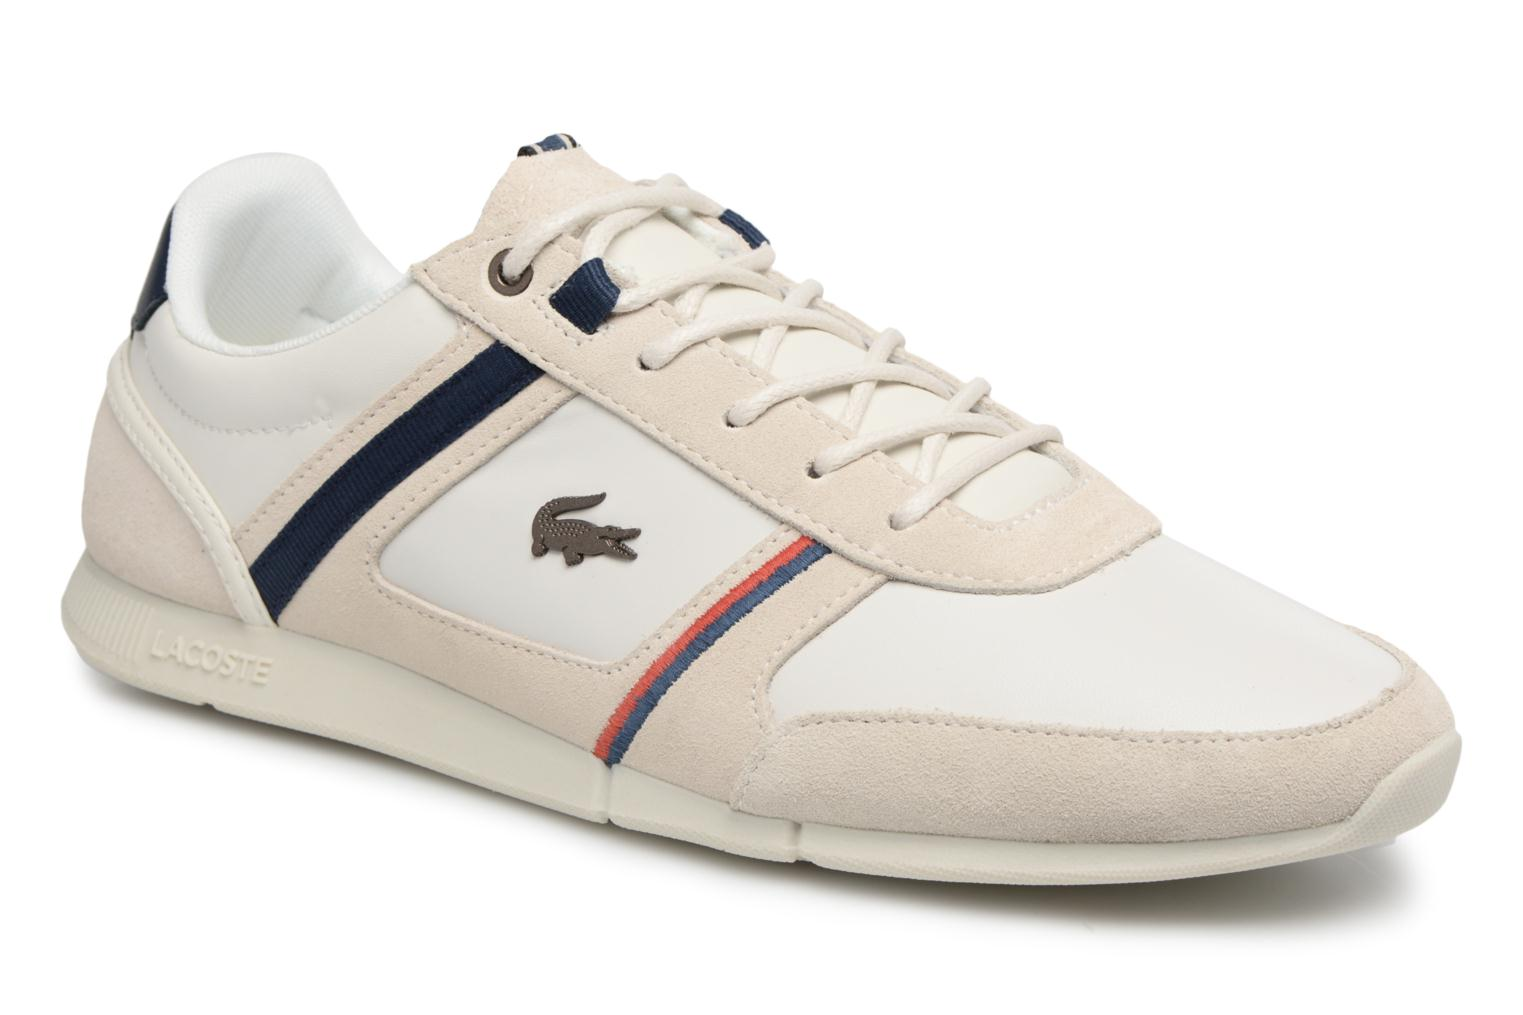 Marques Chaussure homme Lacoste homme MENERVA 118 1 OFF WHT/NVY